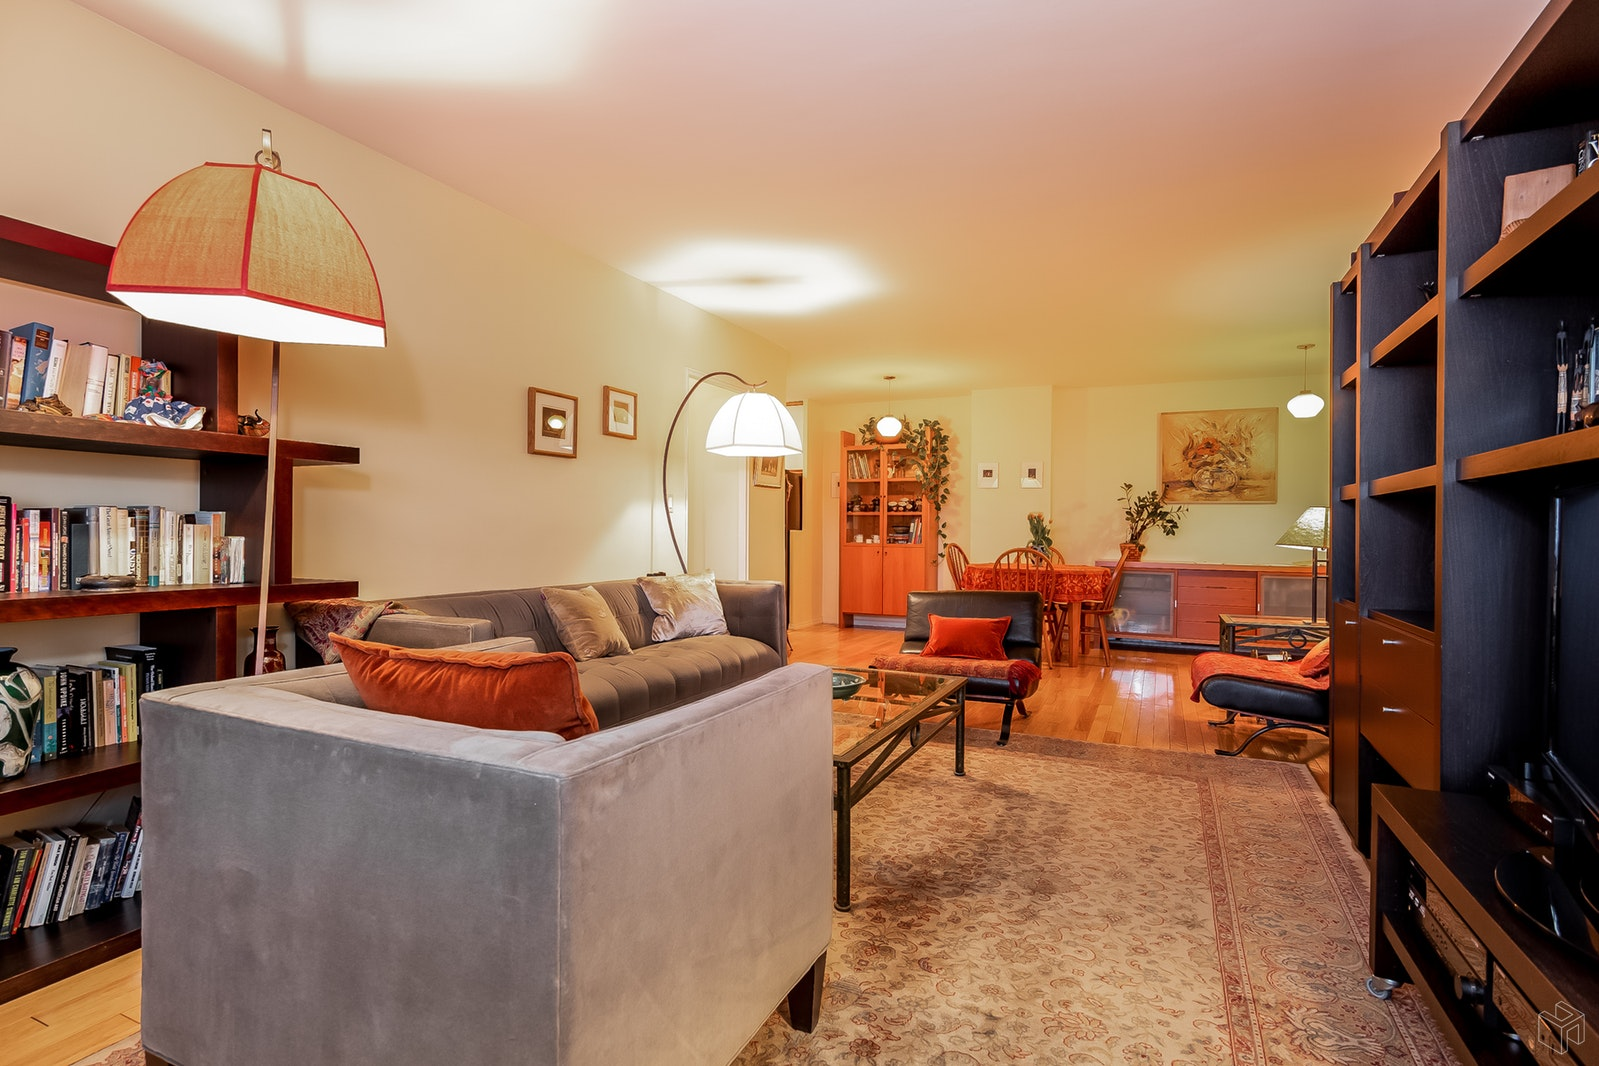 2 BED 2 BATH APT WITH TERRACE AT SKYVIEW, North Riverdale, $495,000, Web #: 19294350